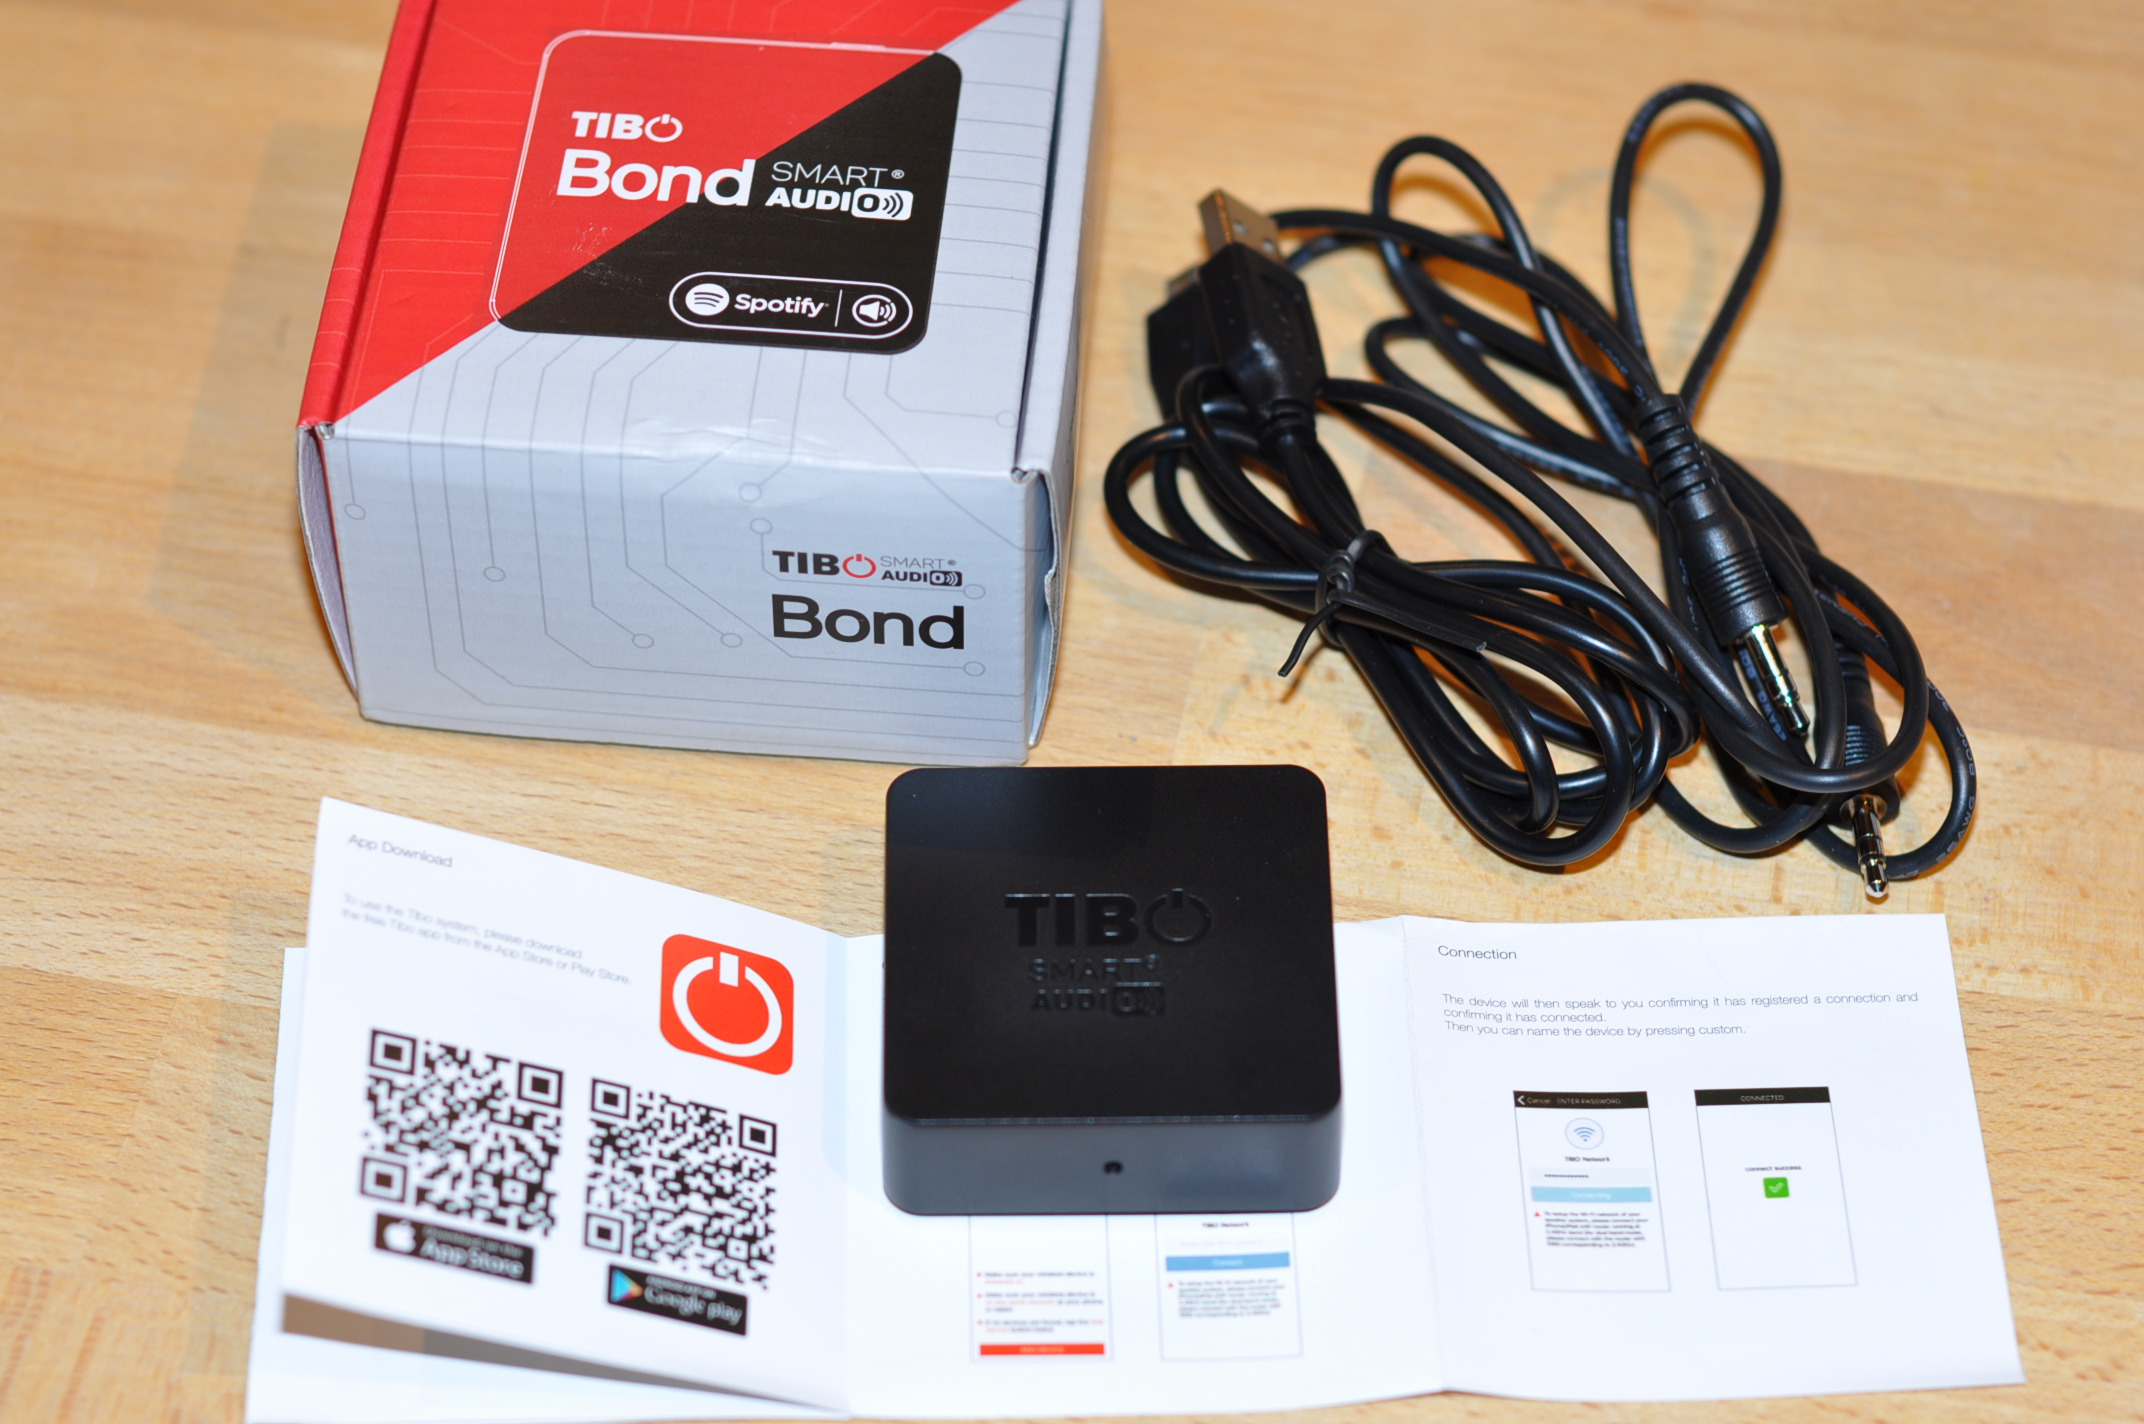 TIBO Bond Mini Wi-Fi Audio Streamer - HiFi and Music Source